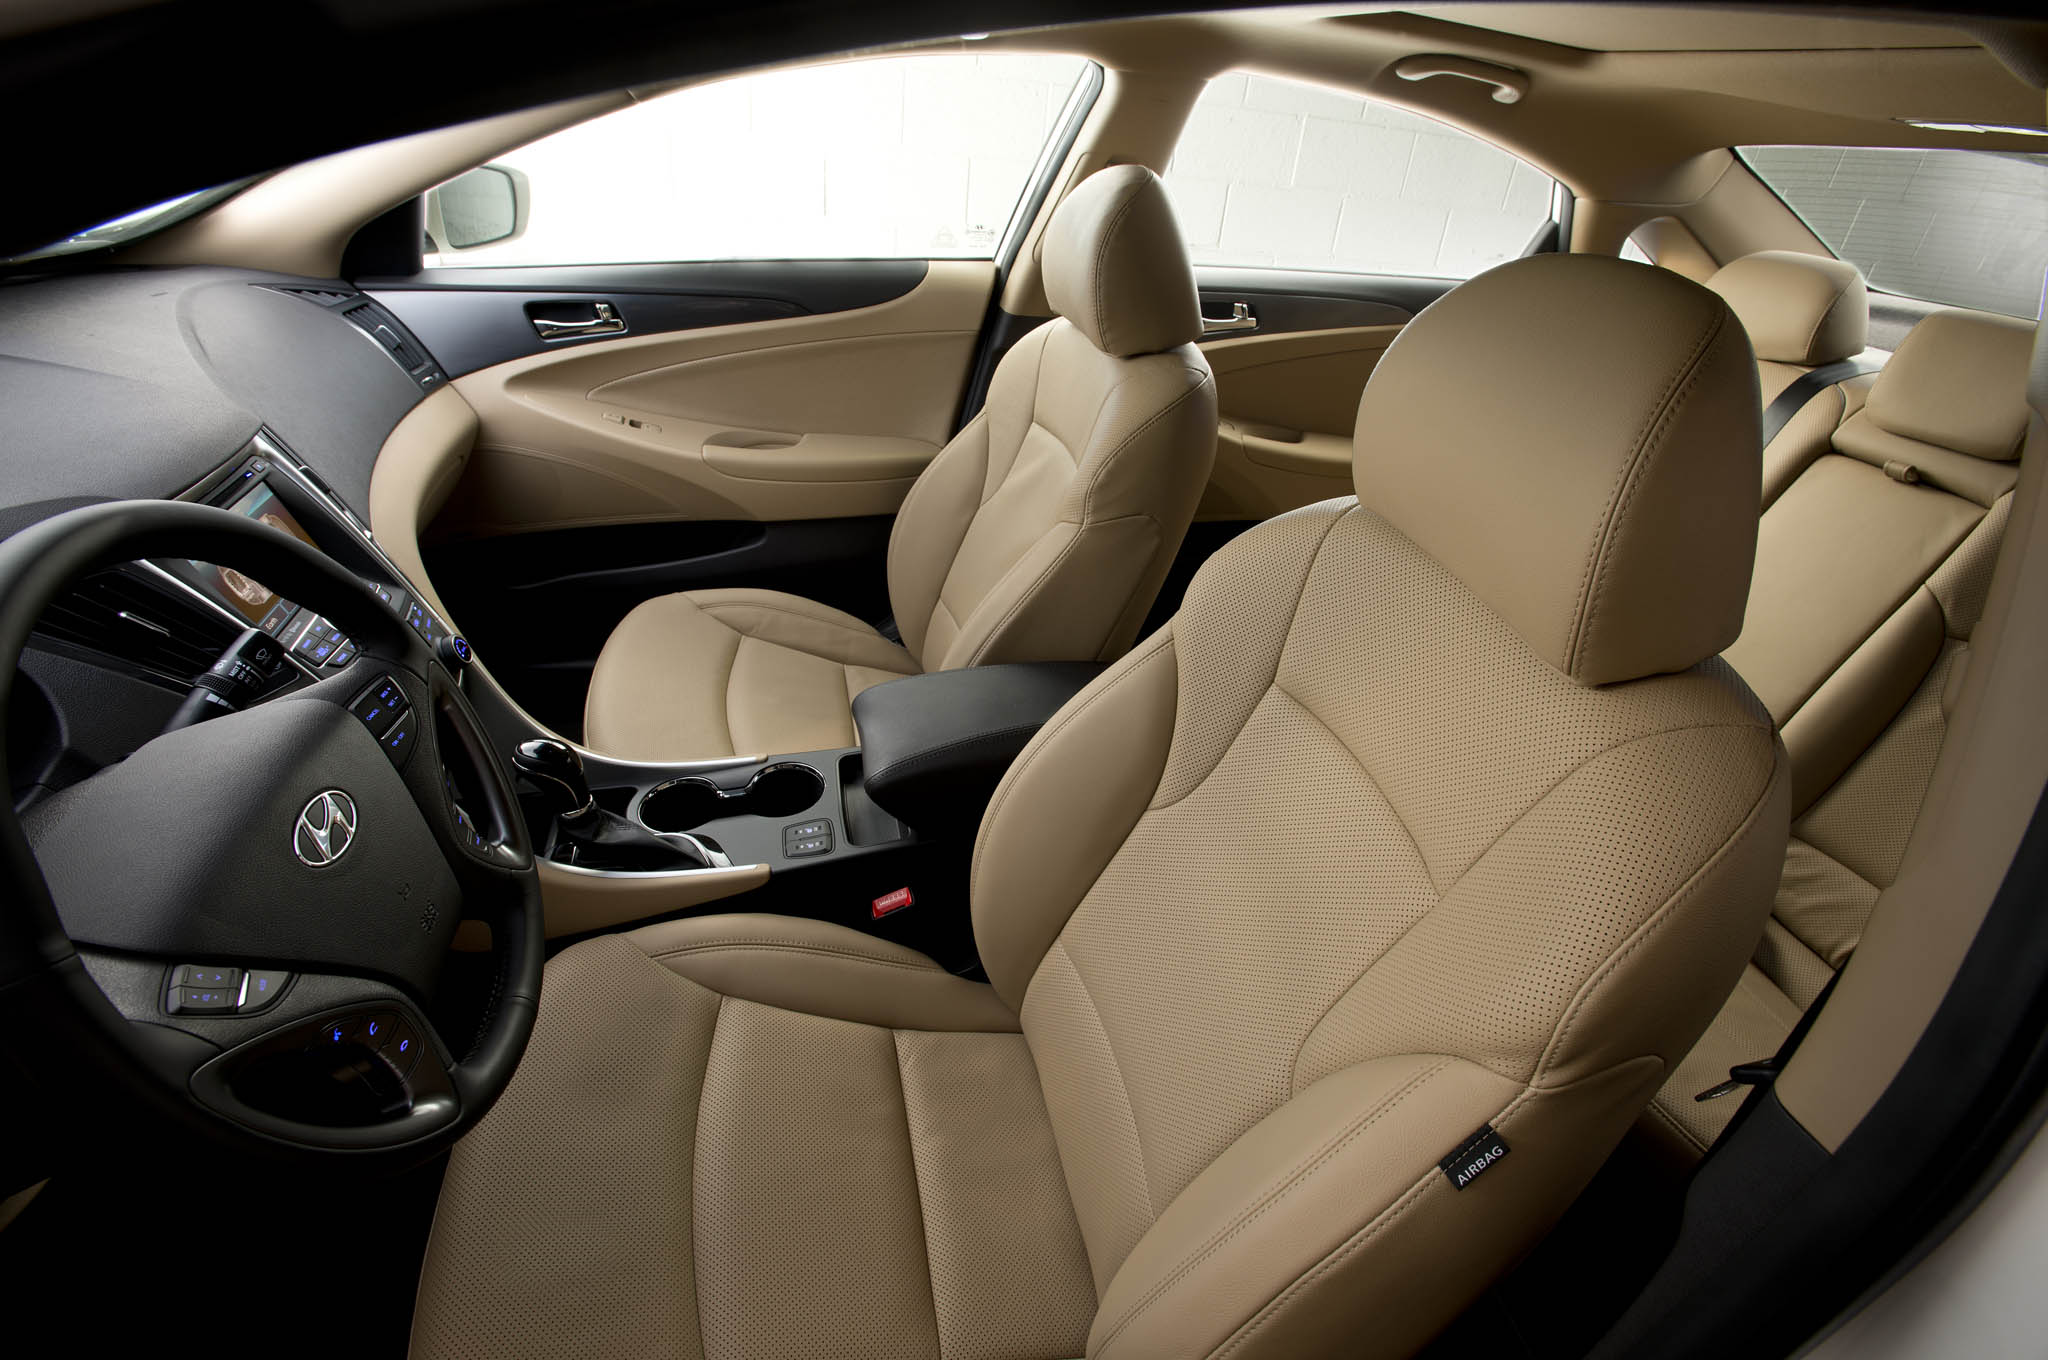 Outgoing hyundai sonata hybrid continues for 2015 model year - 2015 hyundai sonata interior pictures ...